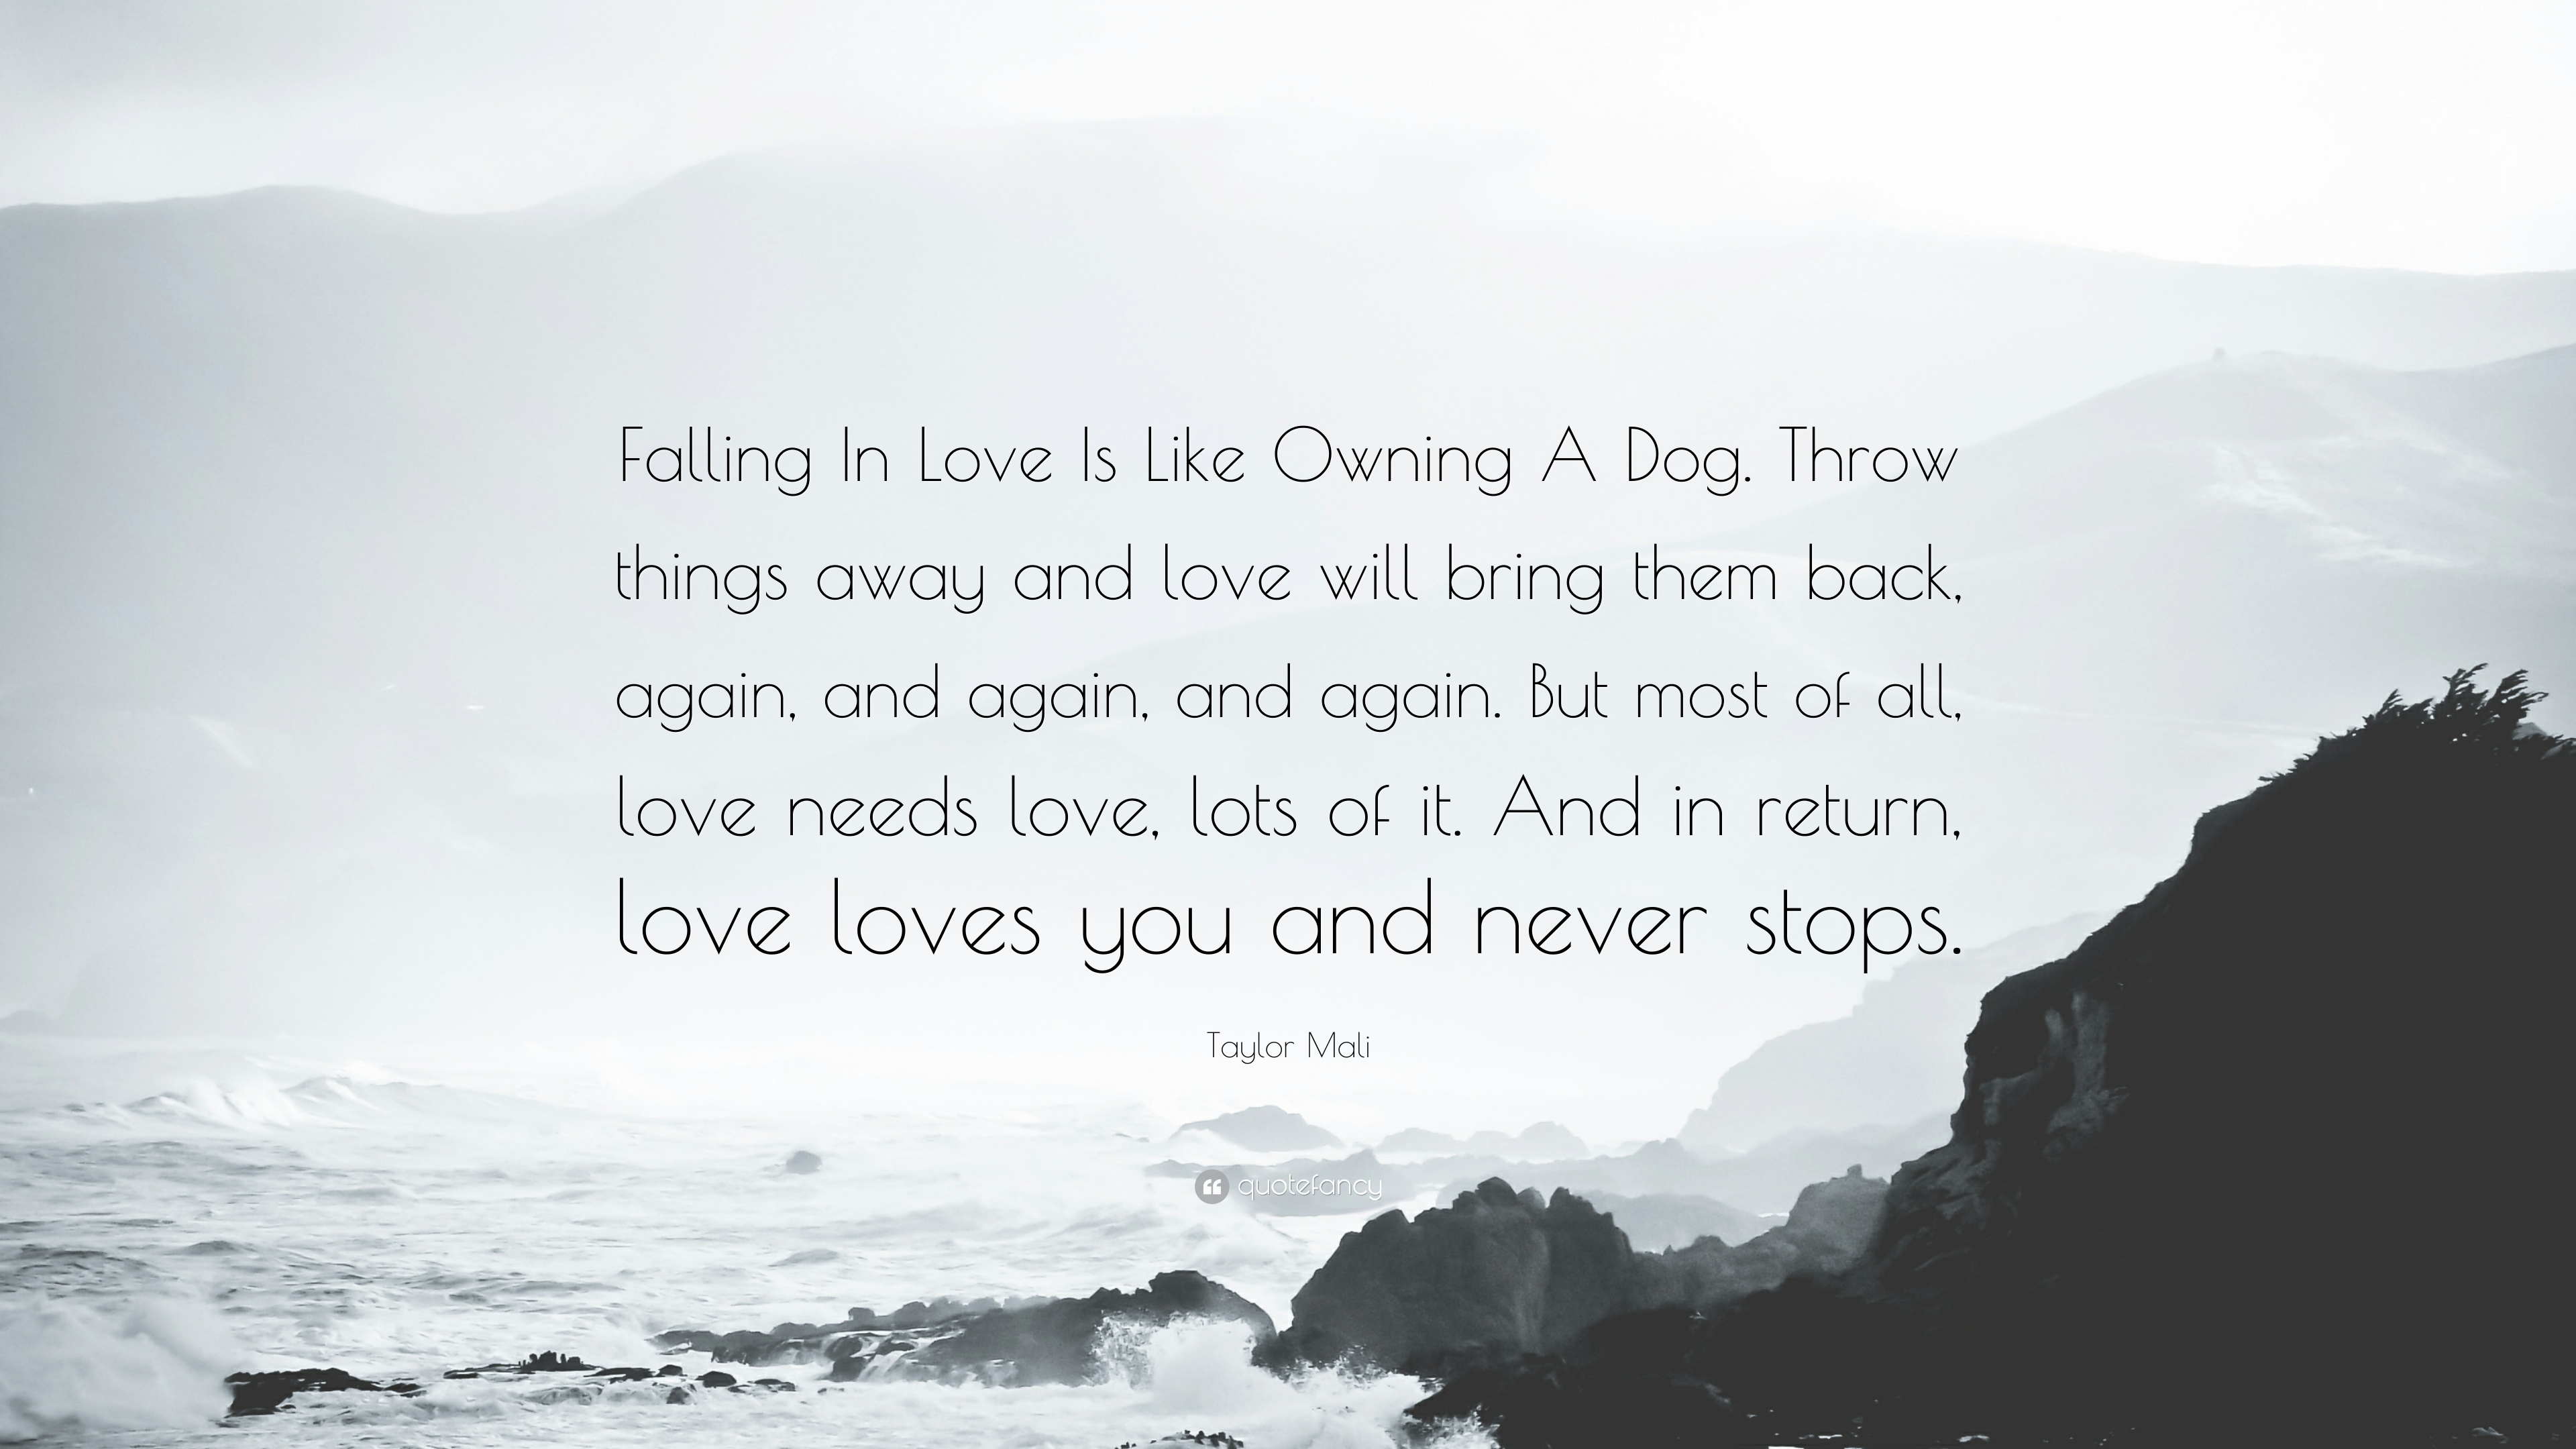 Dog Love Quotes Taylor Mali Quotes 17 Wallpapers  Quotefancy